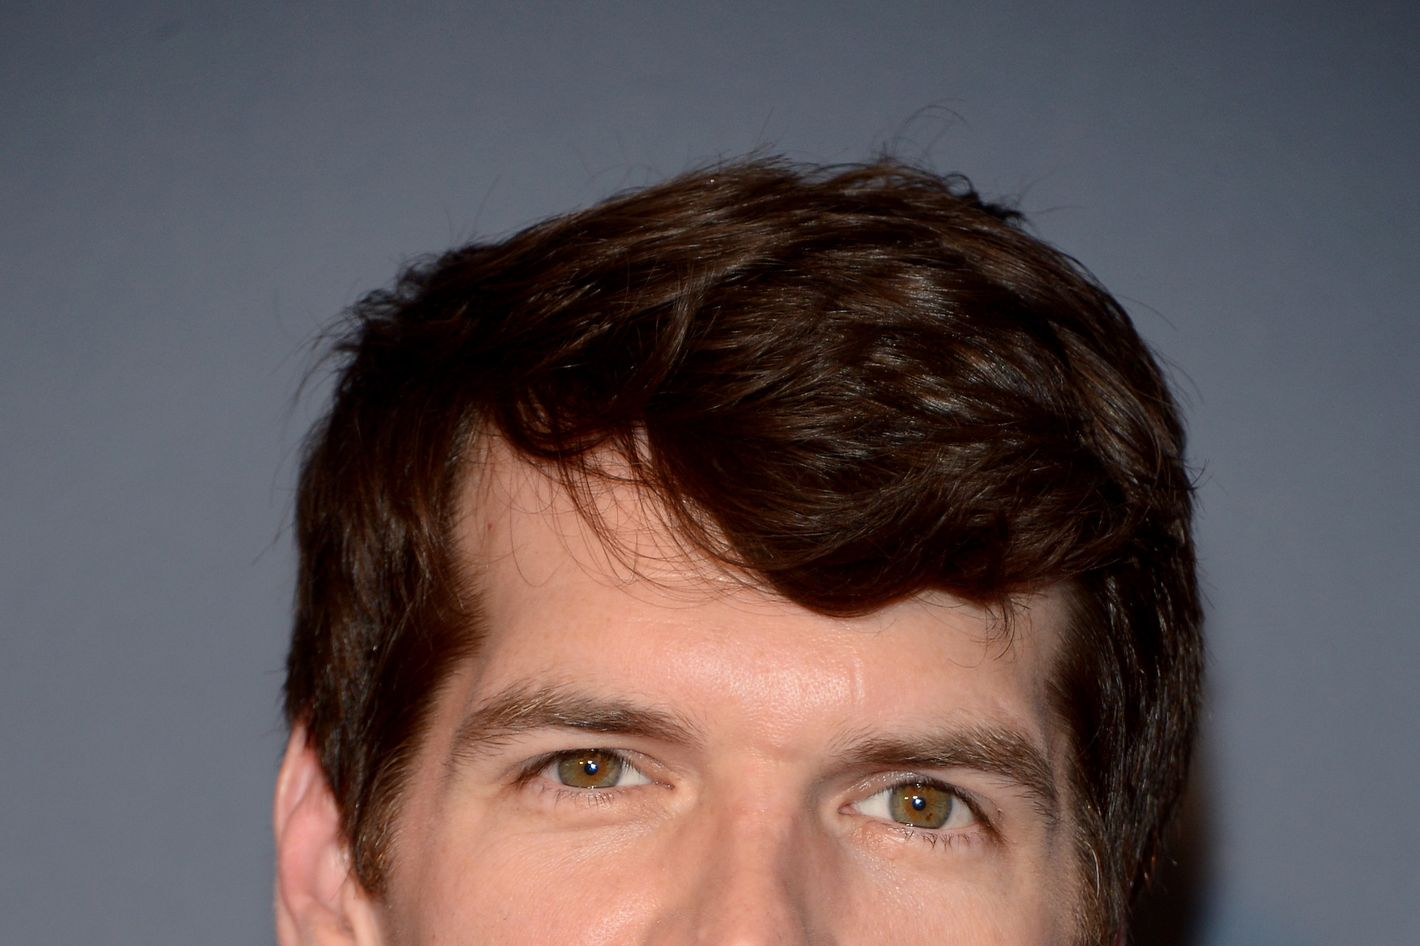 NEW YORK, NY - APRIL 26:  Actor Timothy Simons attends 2014 American Comedy Awards at Hammerstein Ballroom on April 26, 2014 in New York City.  (Photo by Michael Loccisano/Getty Images)